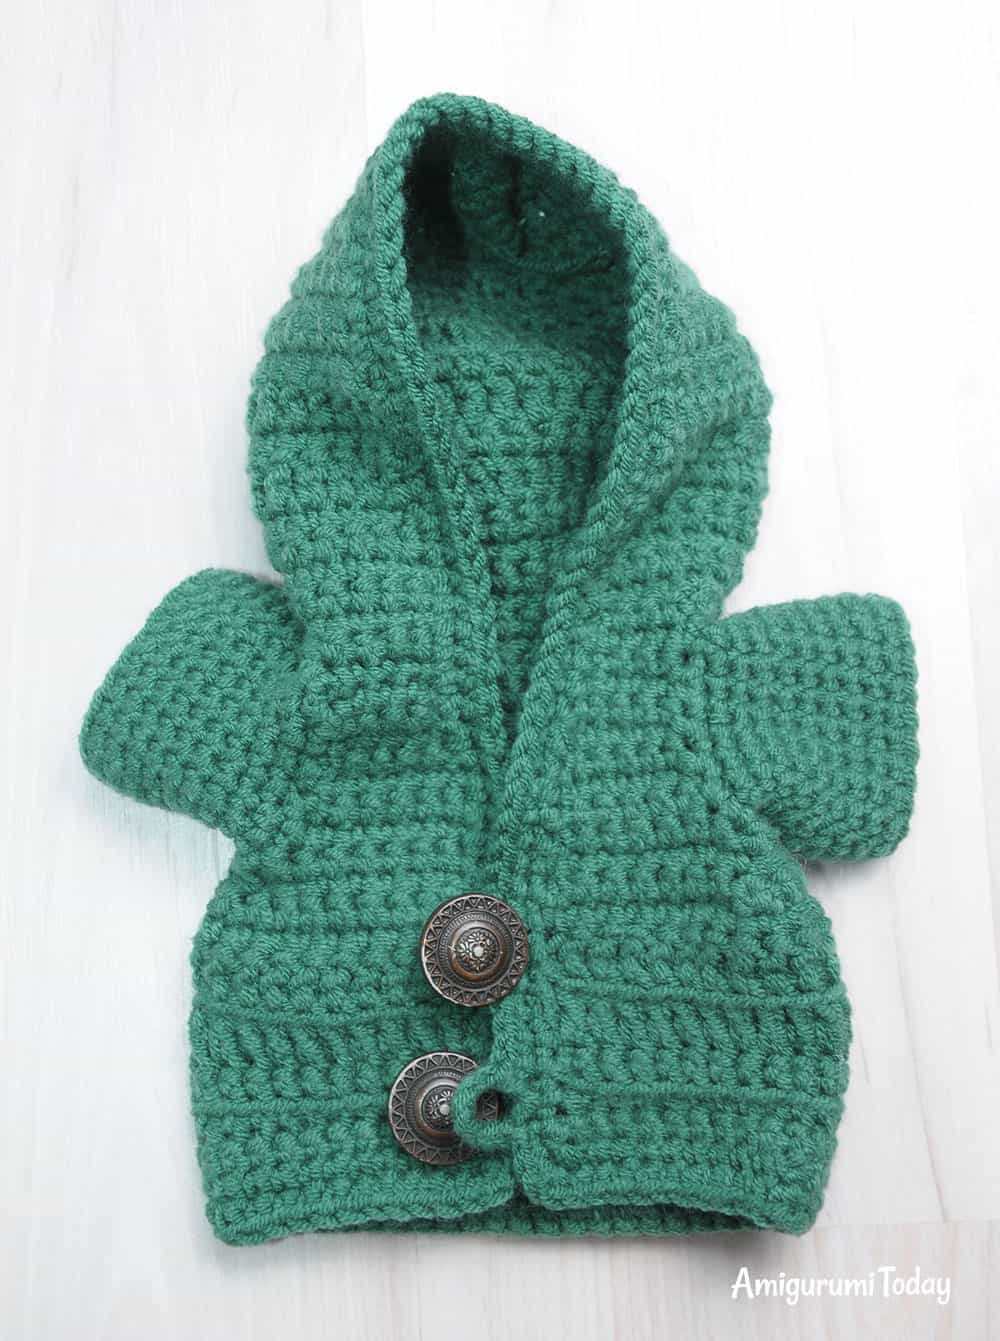 Honey teddy bears - hoodie crochet pattern